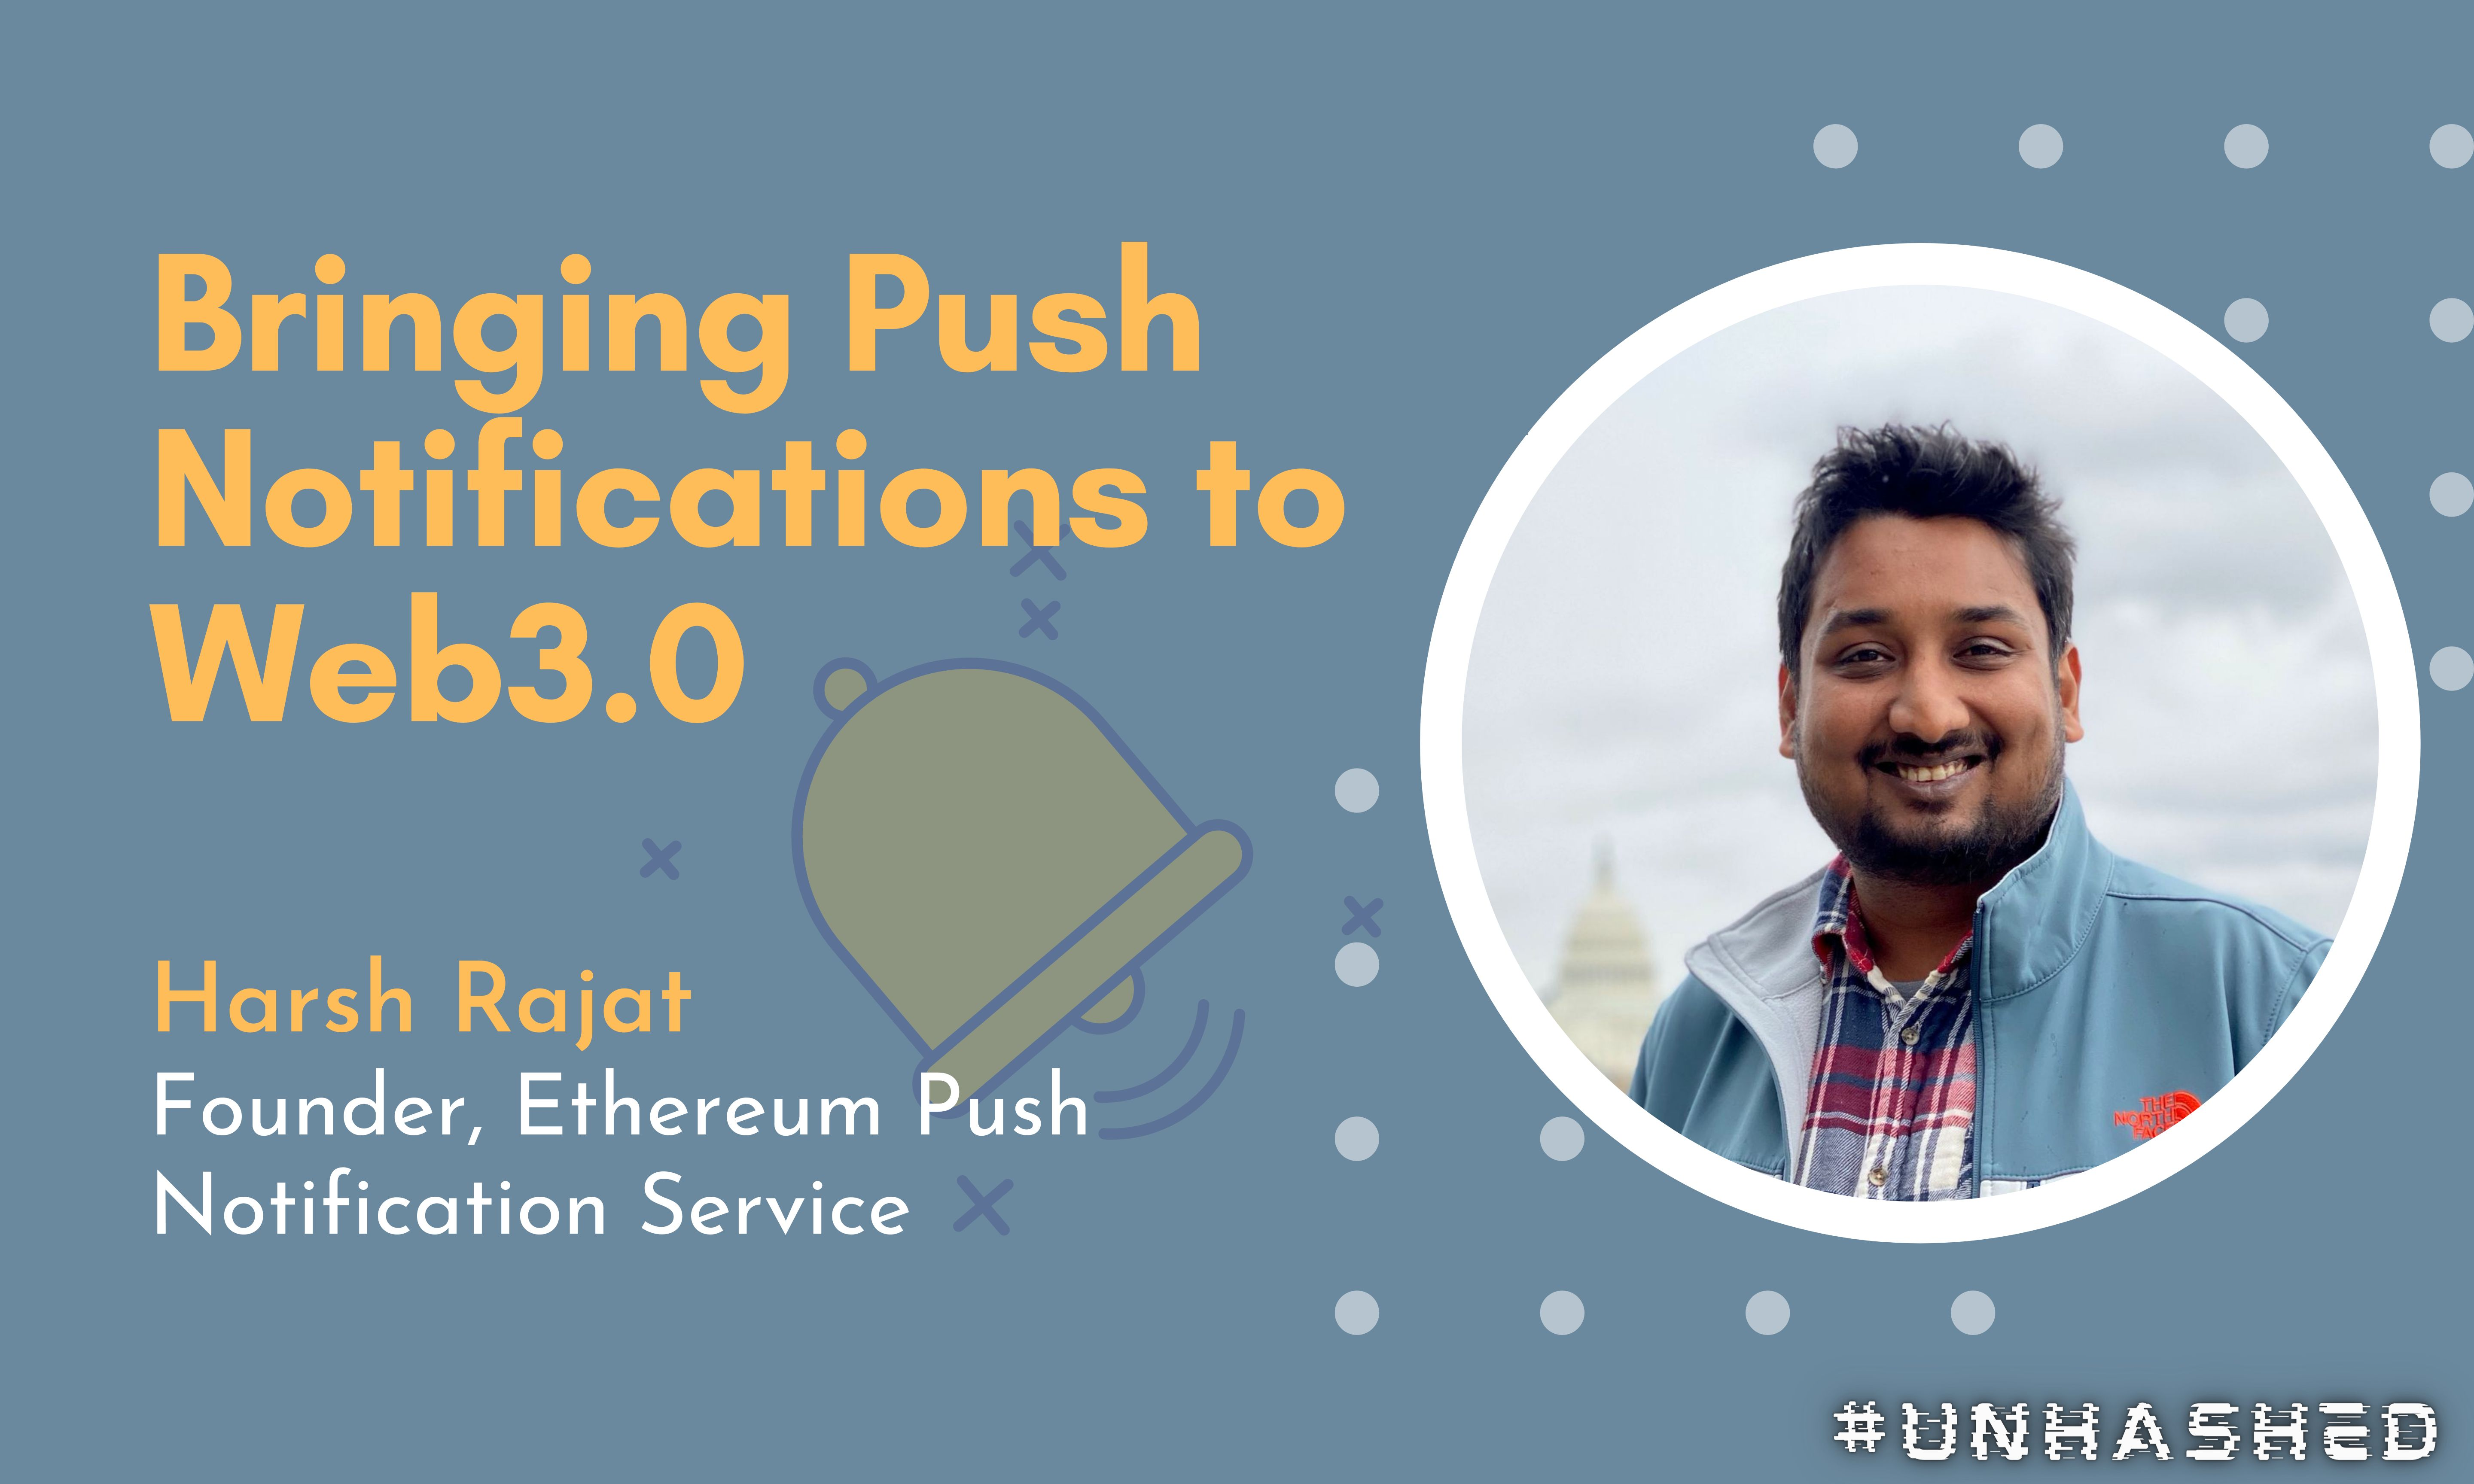 /push-notifications-will-pull-blockchain-out-of-the-stone-age-of-communication-unhashed-1-ql1f33d6 feature image